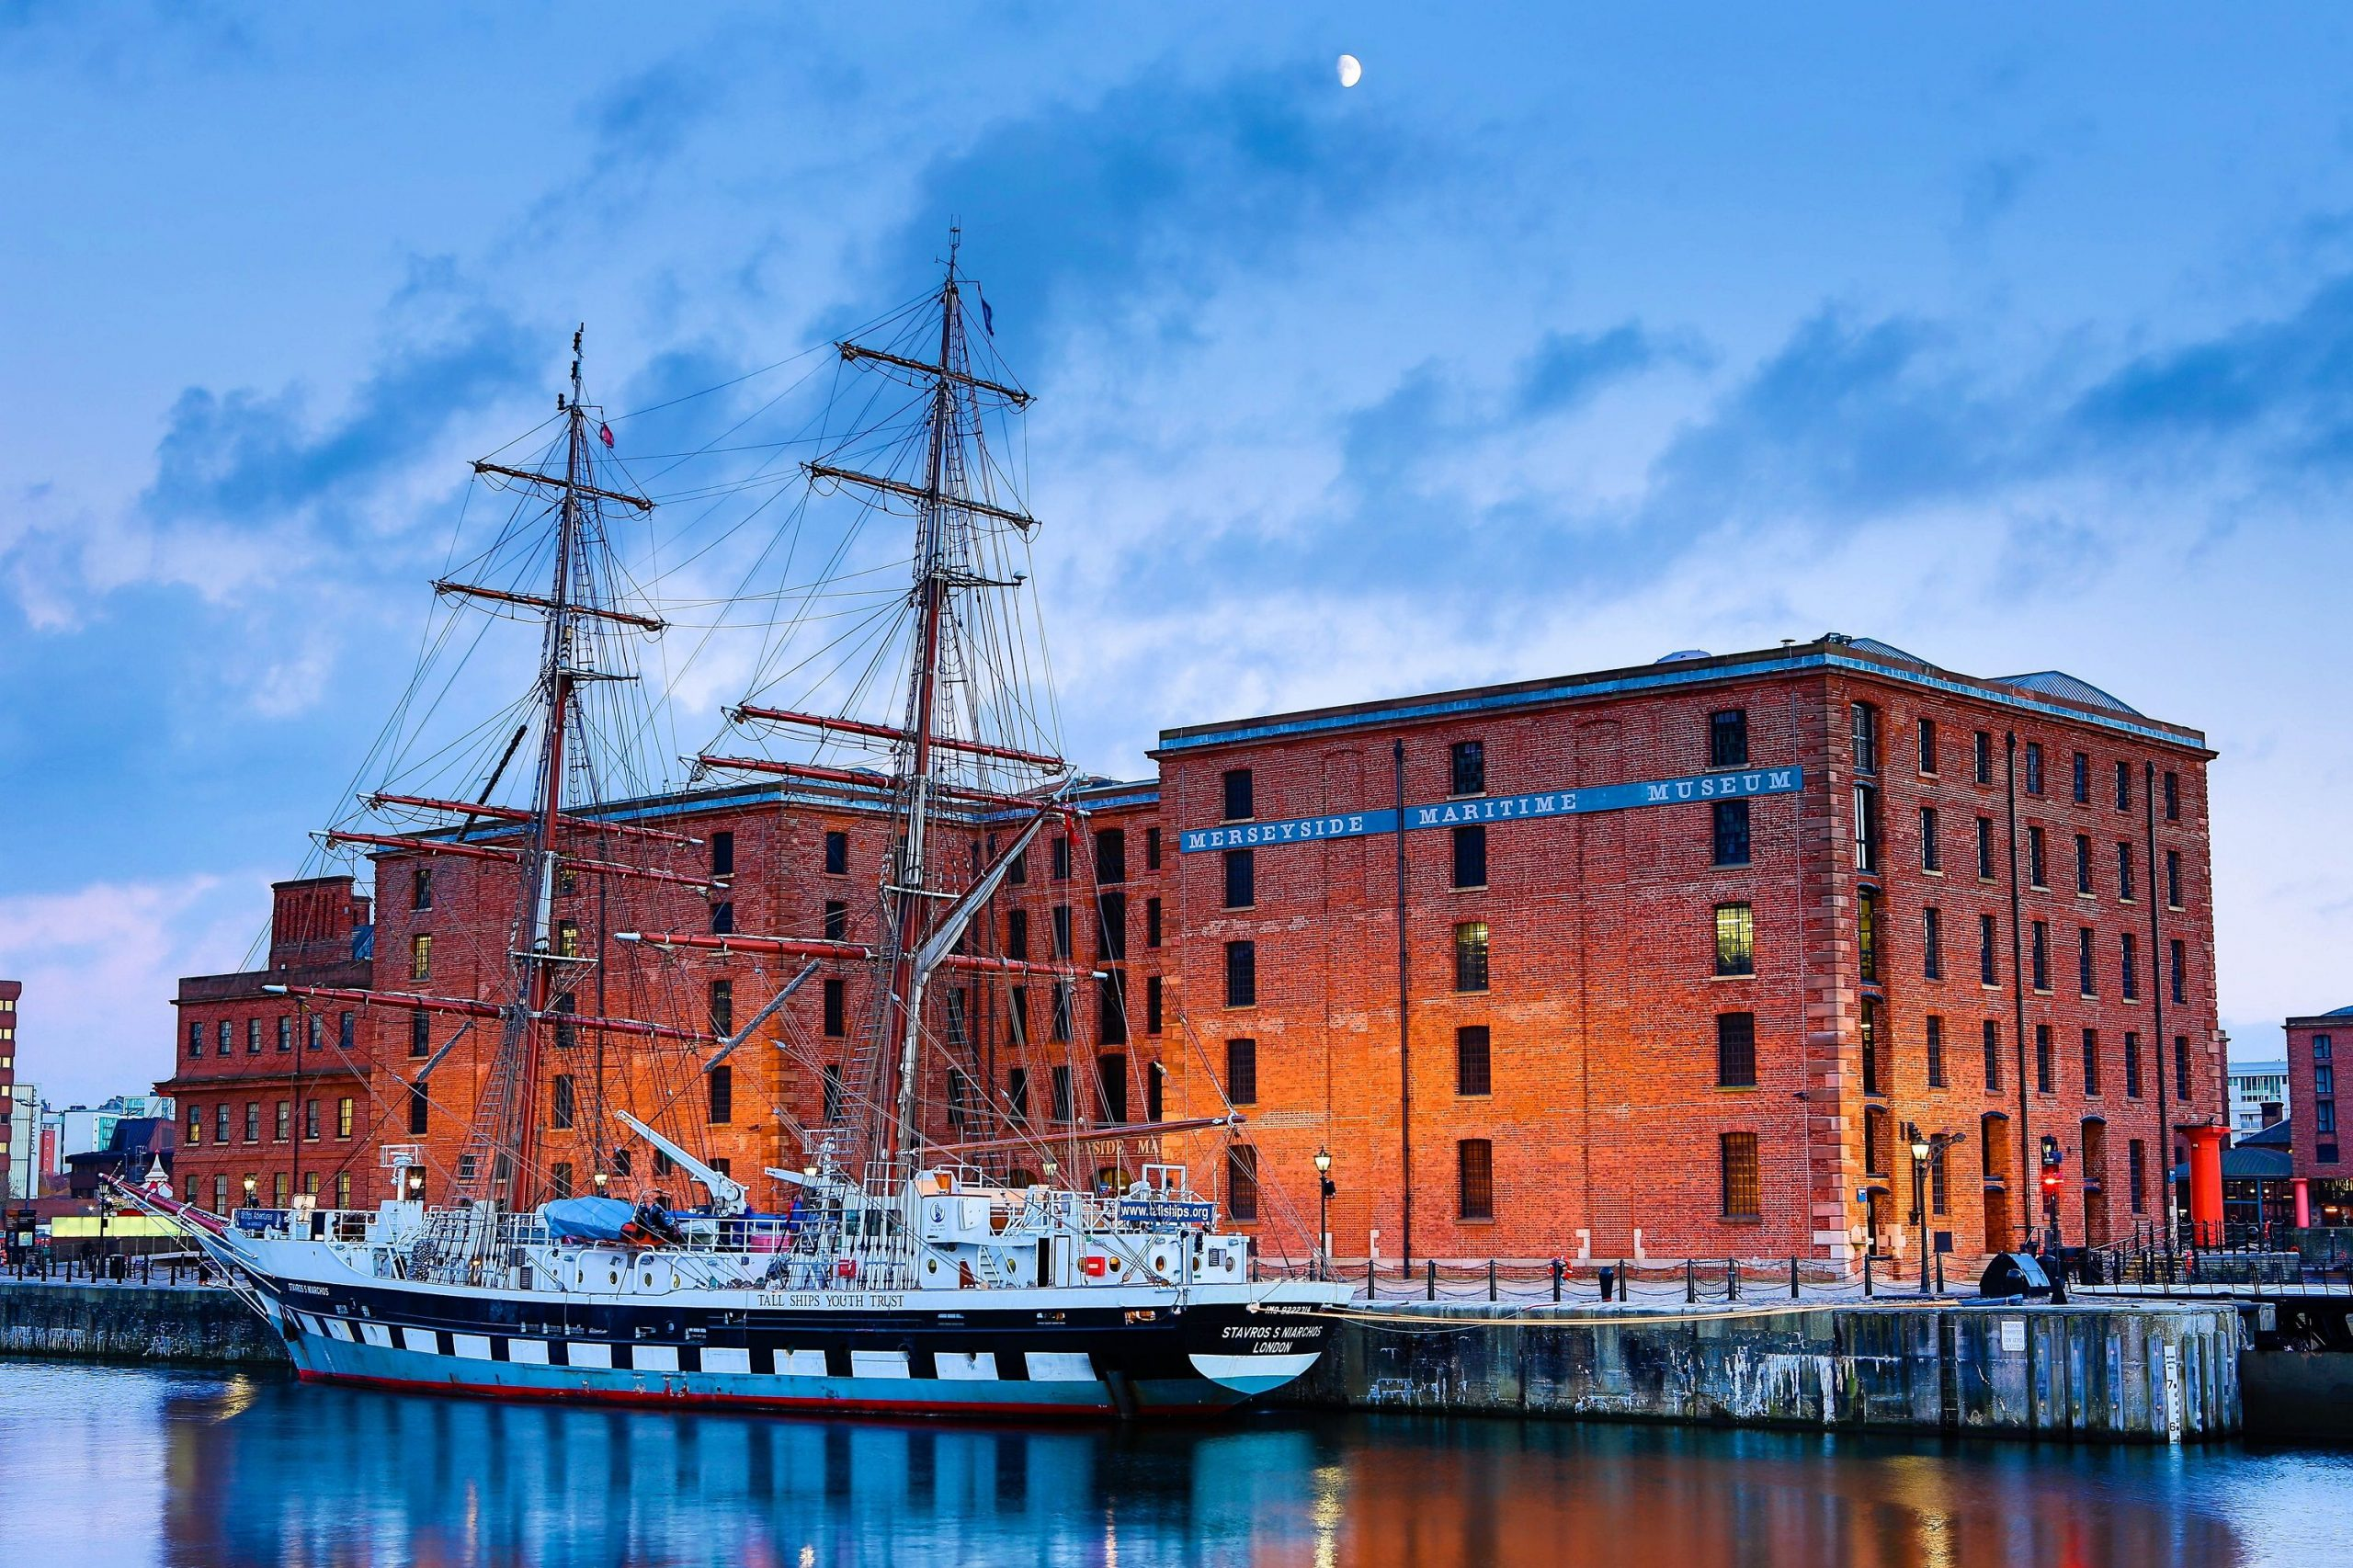 Merseyside Maritime Museum, one of the eight venues run by National Museums Liverpool